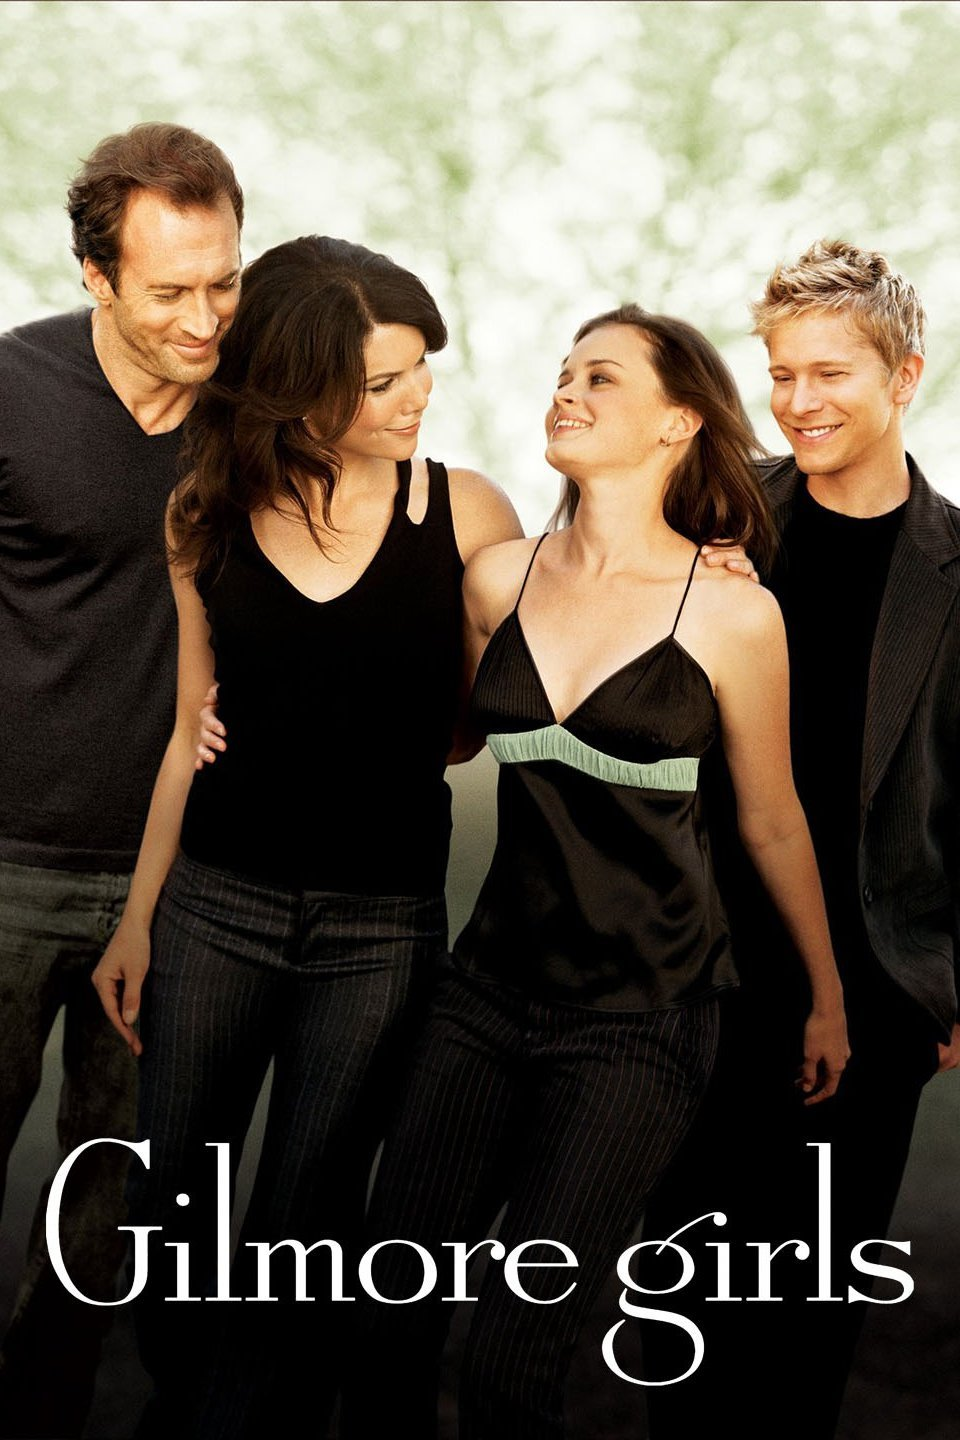 Image result for gilmore girls show